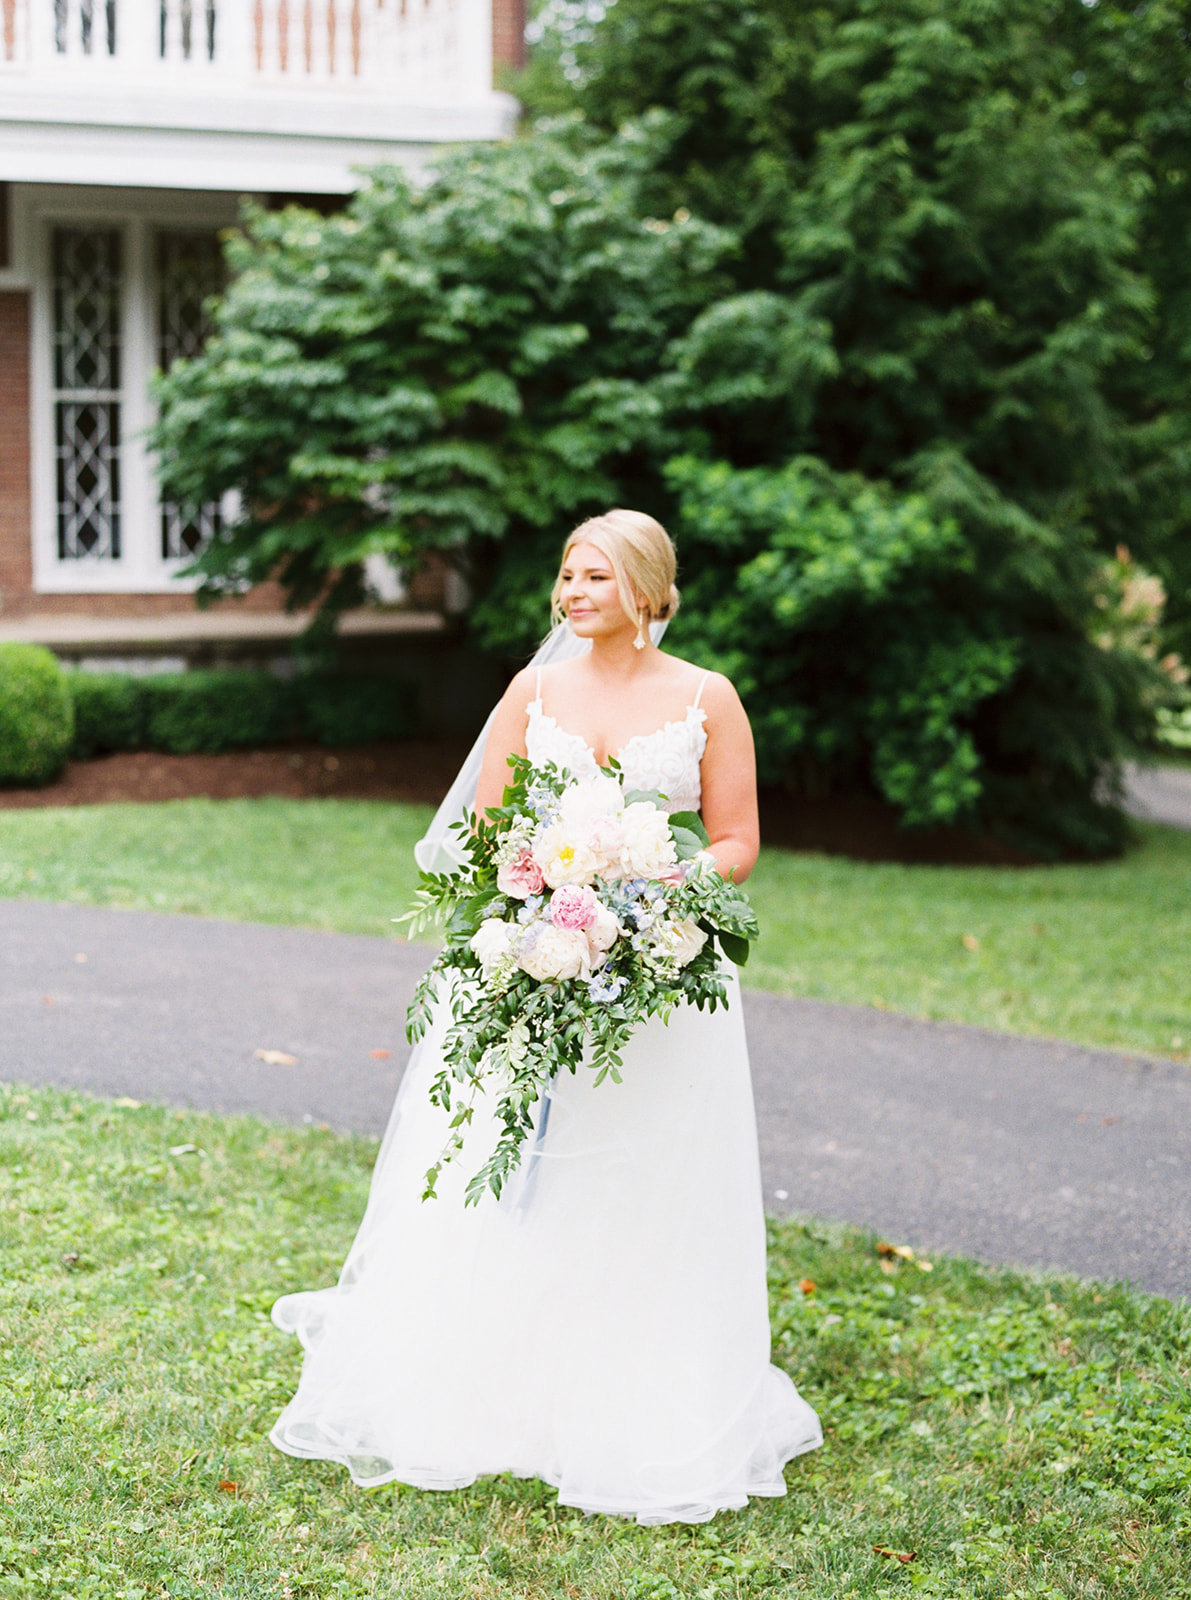 Warrenwood Manor - Kentucky Wedding Venue - Photo by Lyndsey Boyd00014